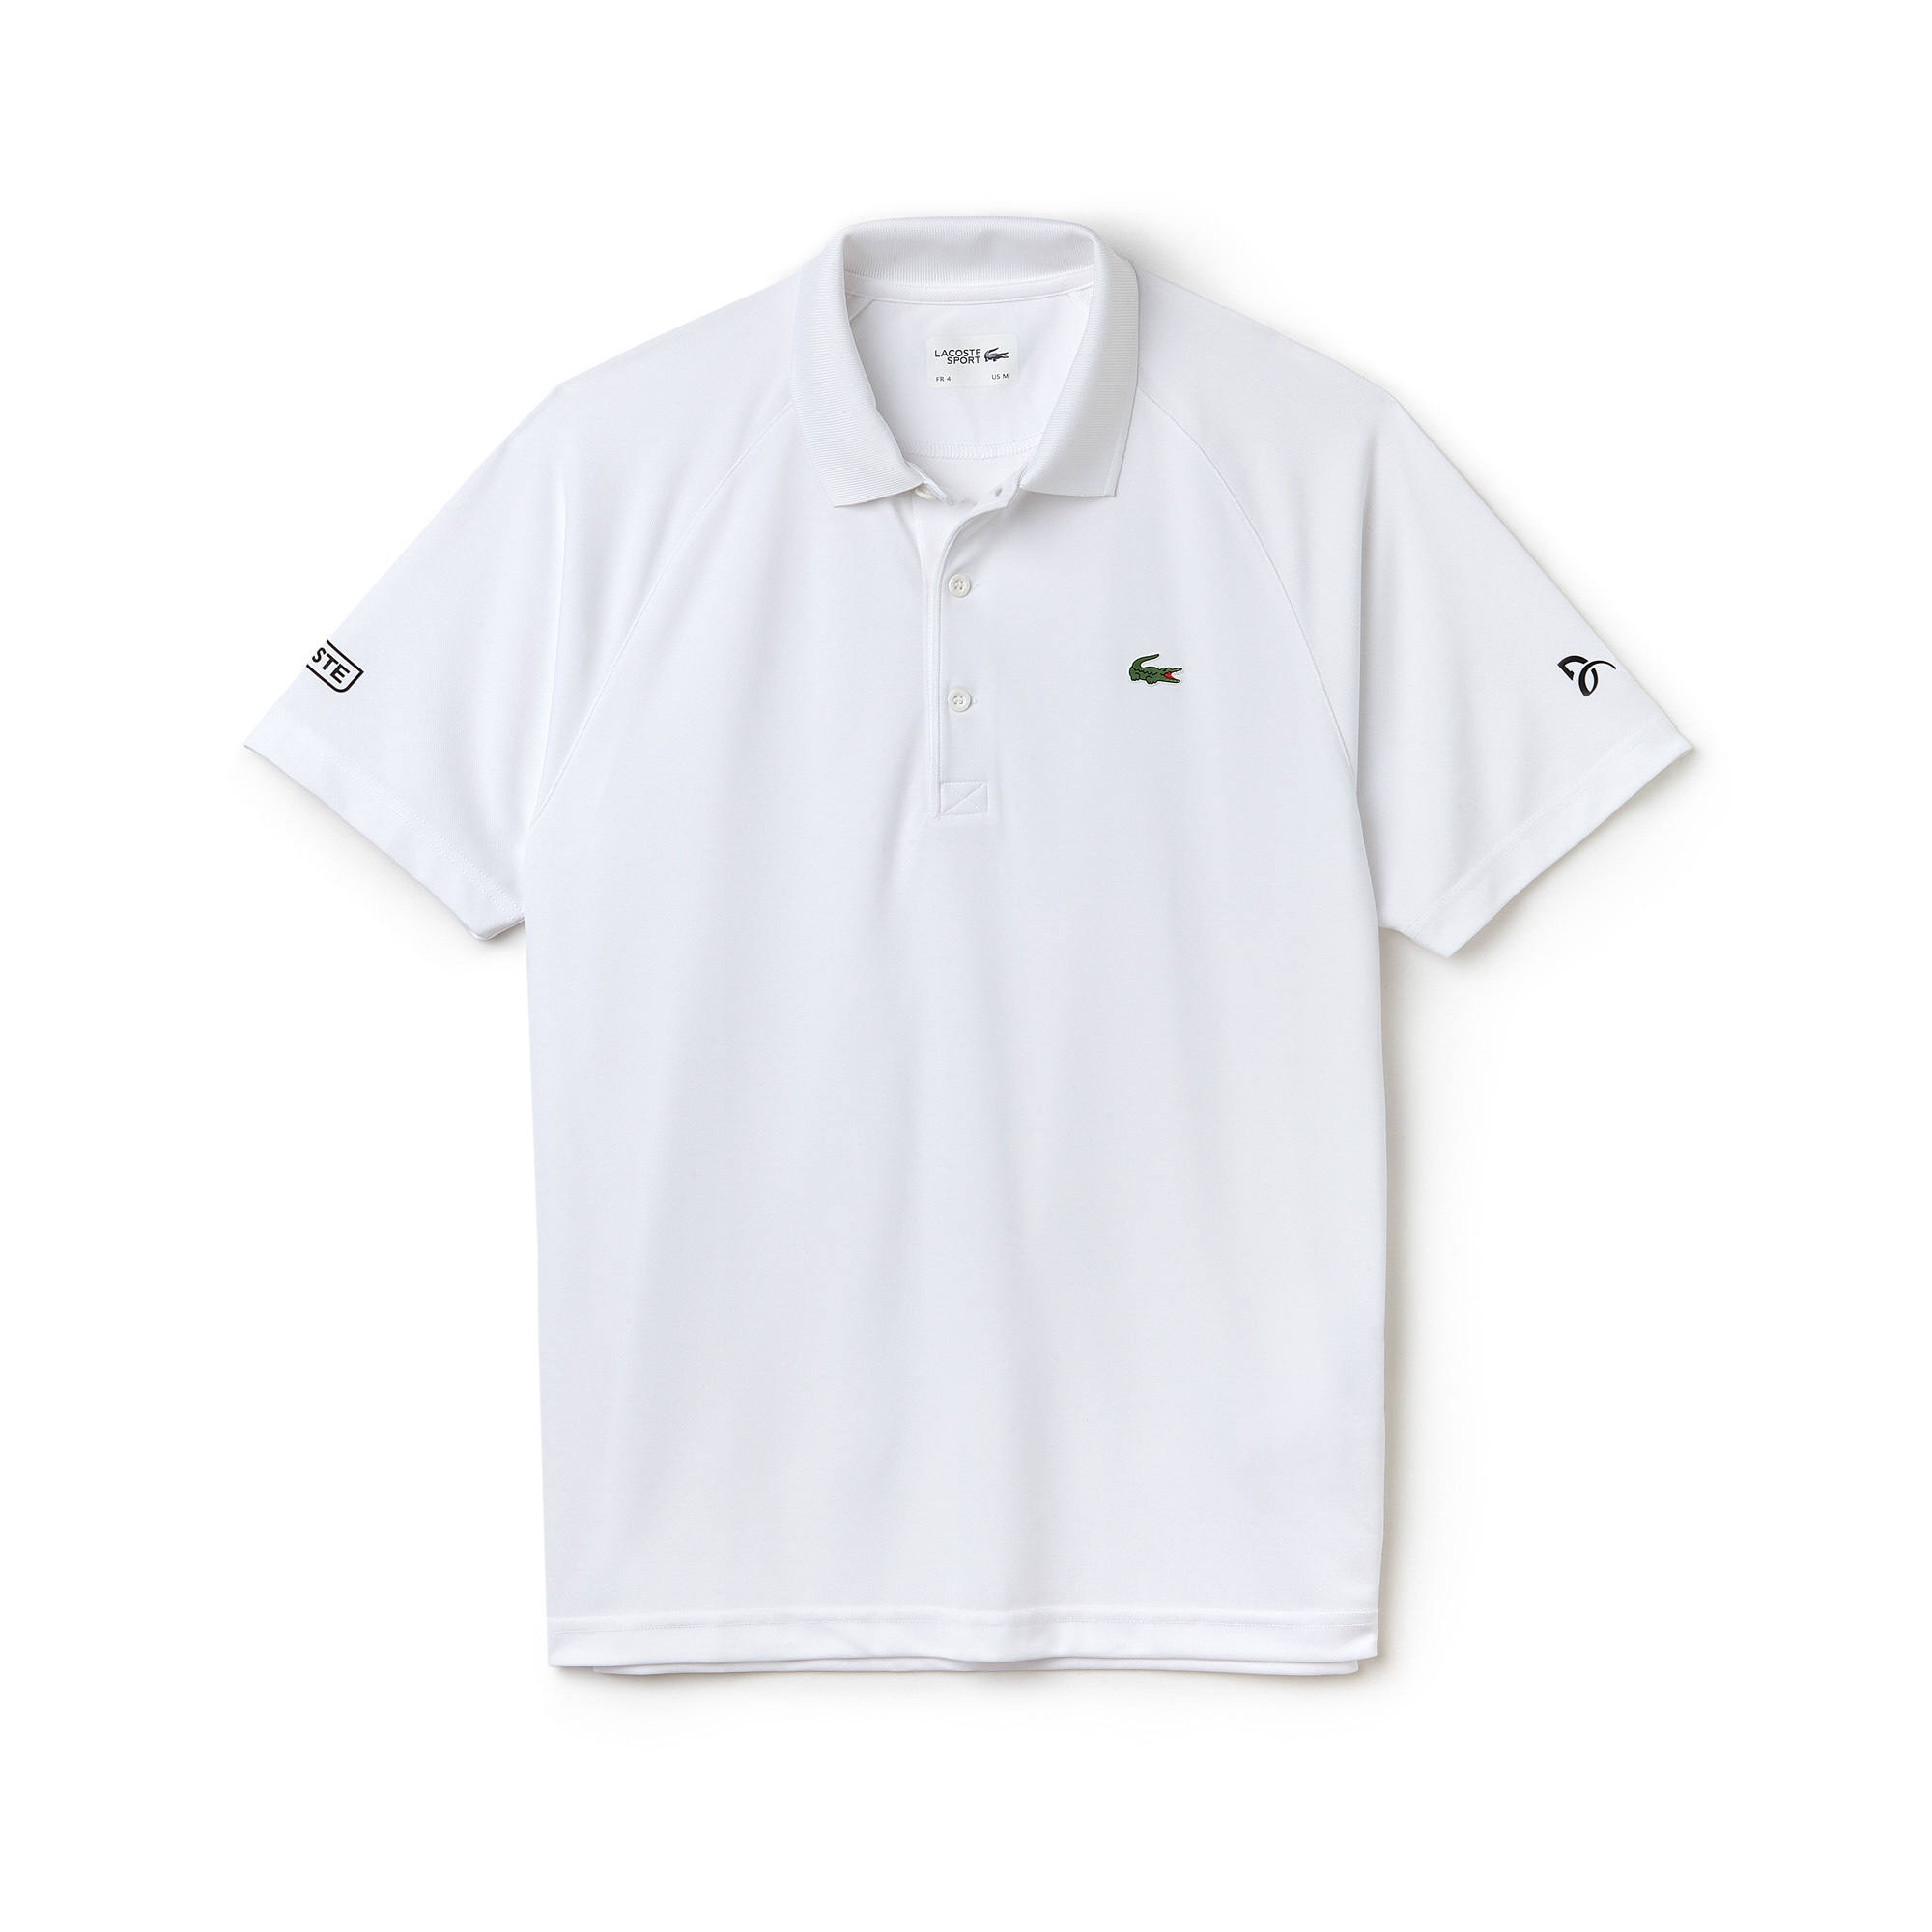 Lacoste polo Kollektion für Novak Djokovic - Exclusive Green Edition